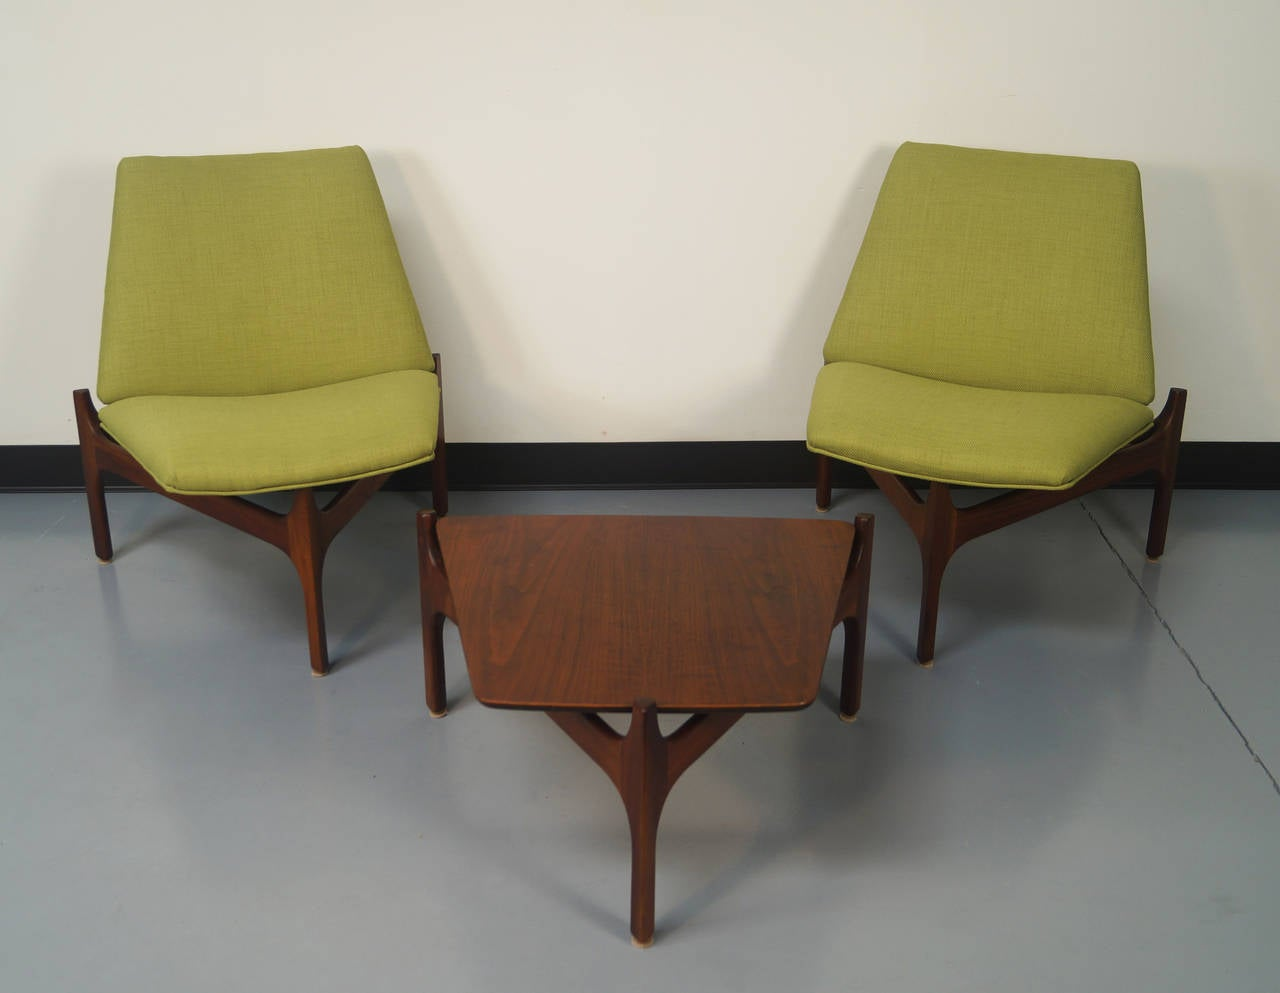 Vintage Seating Group by John Keal For Sale 1